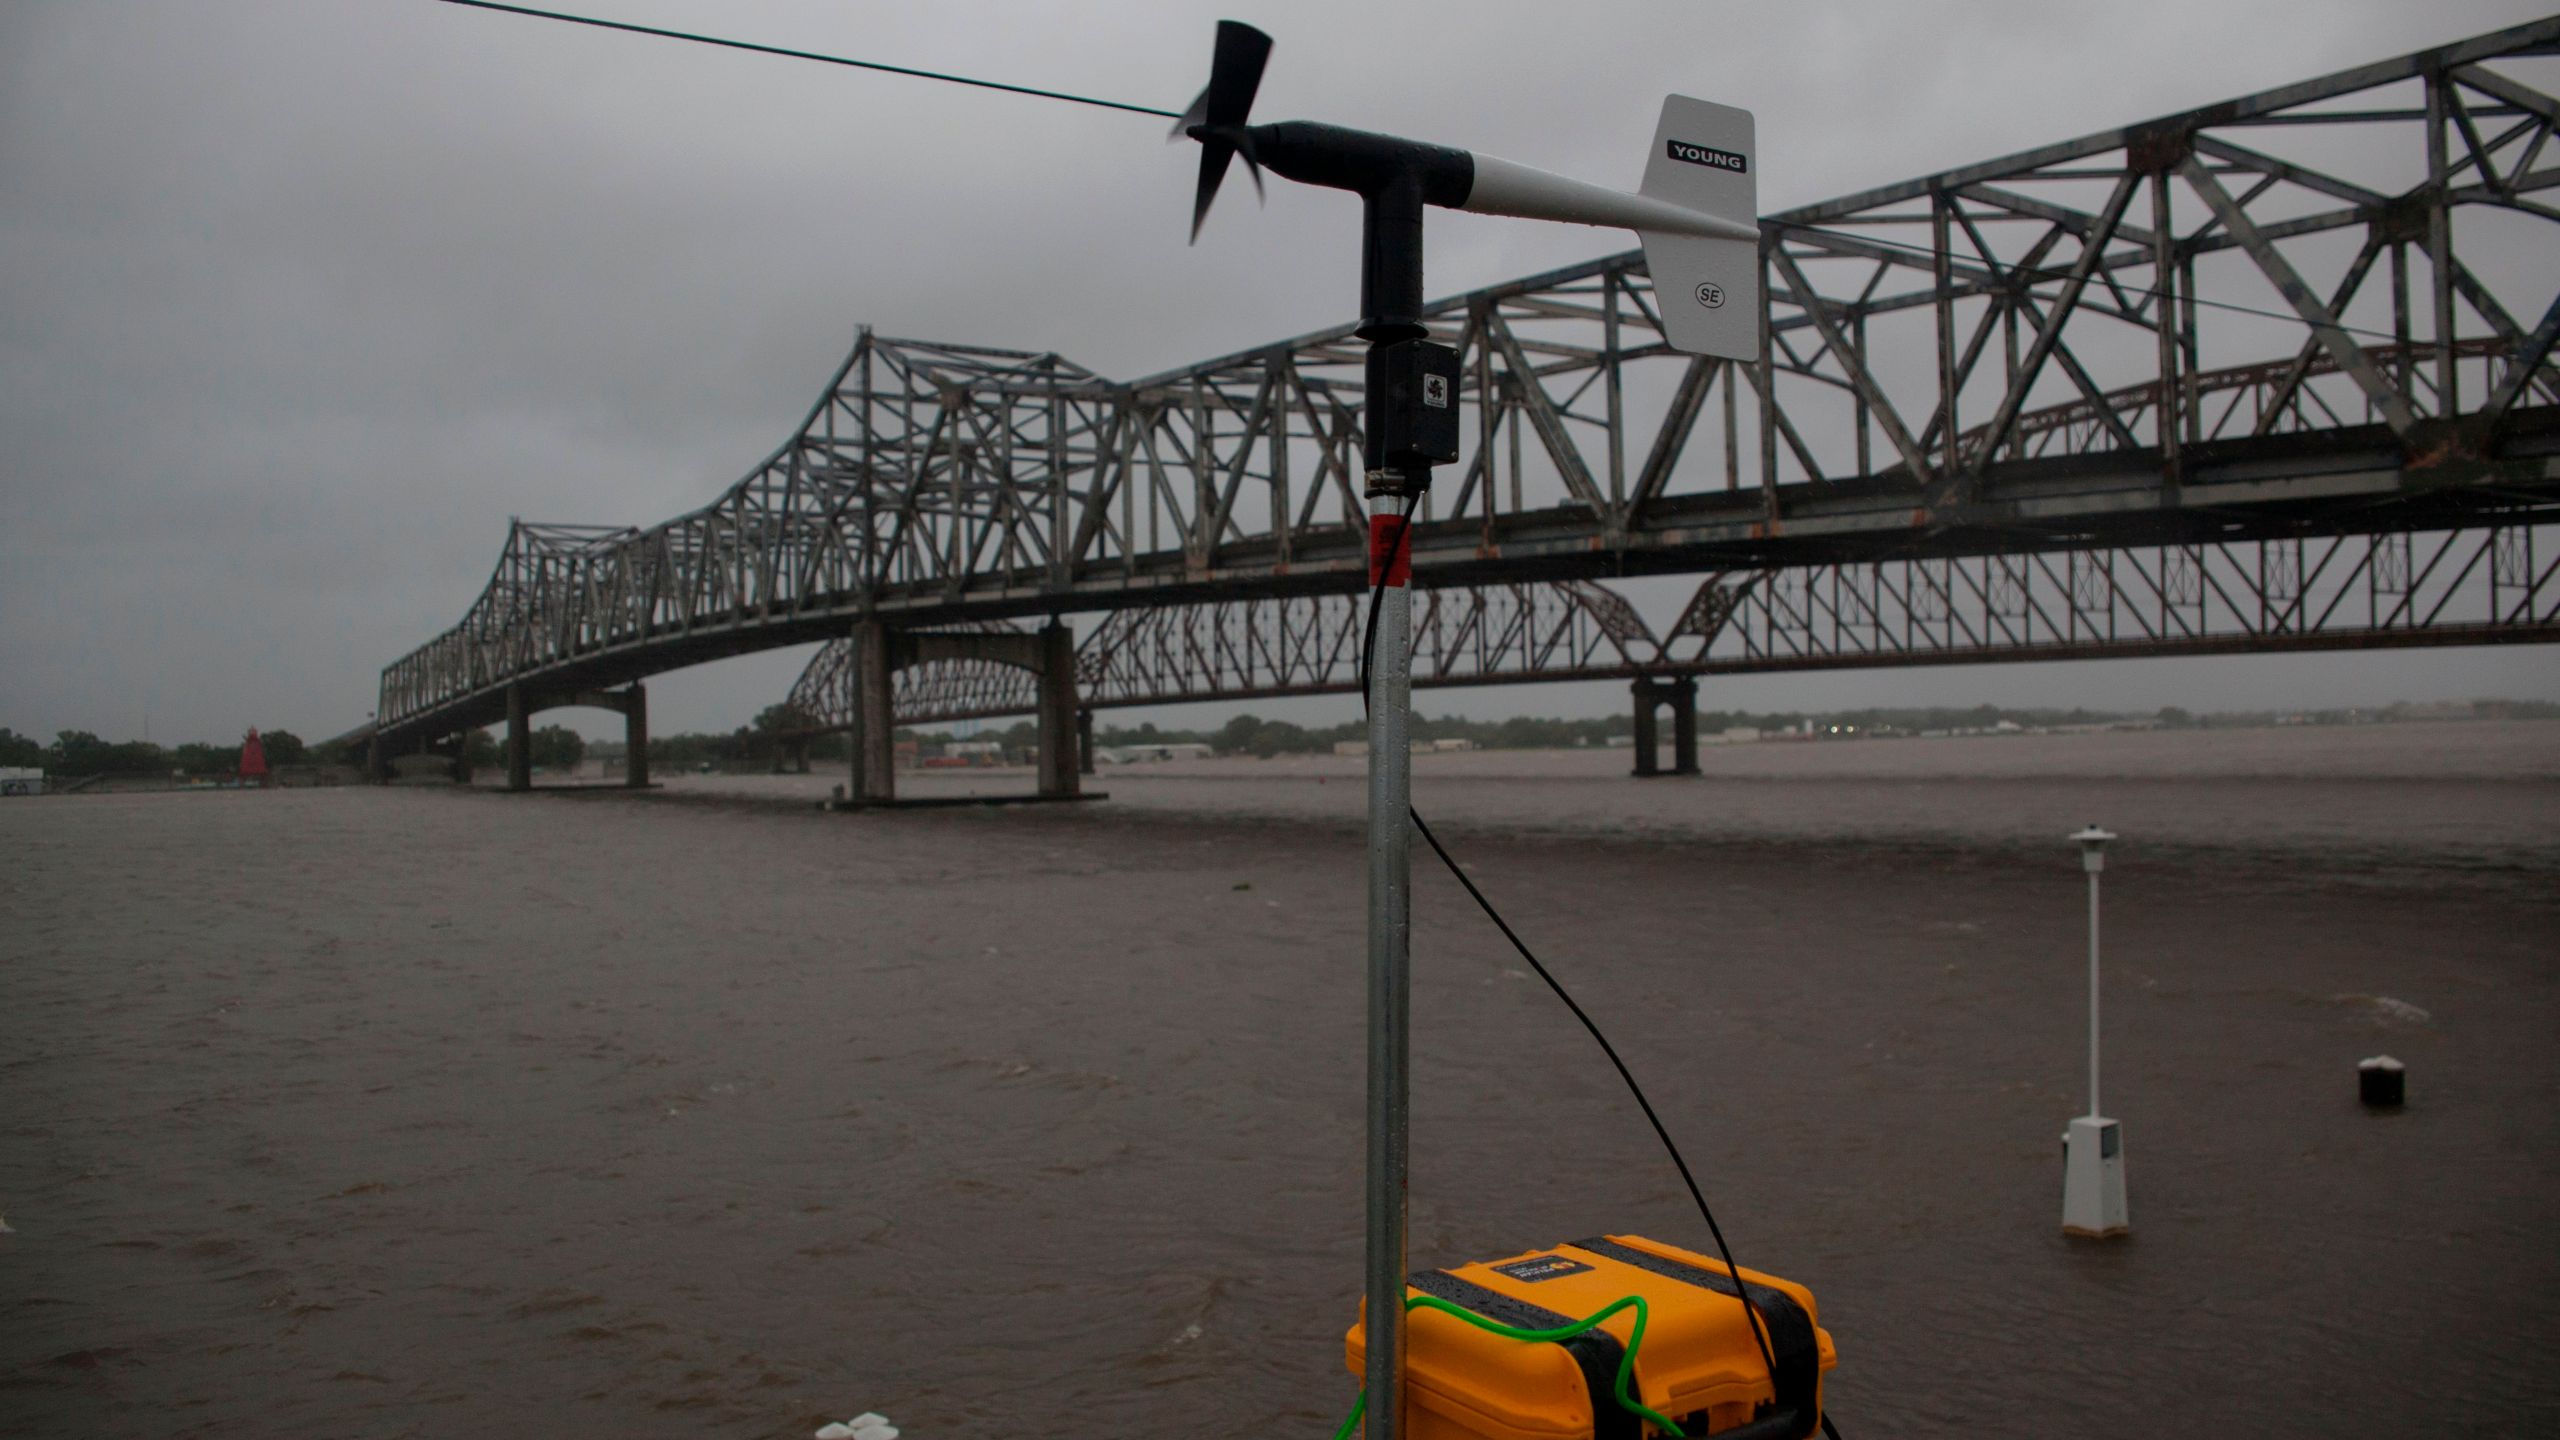 A wind gauge checks wind speeds and wind gusts along the Berwick River in Morgan City, Louisiana ahead of Tropical Storm Barry Saturday on July 13,2019. (Credit: SETH HERALD/AFP/Getty Images)